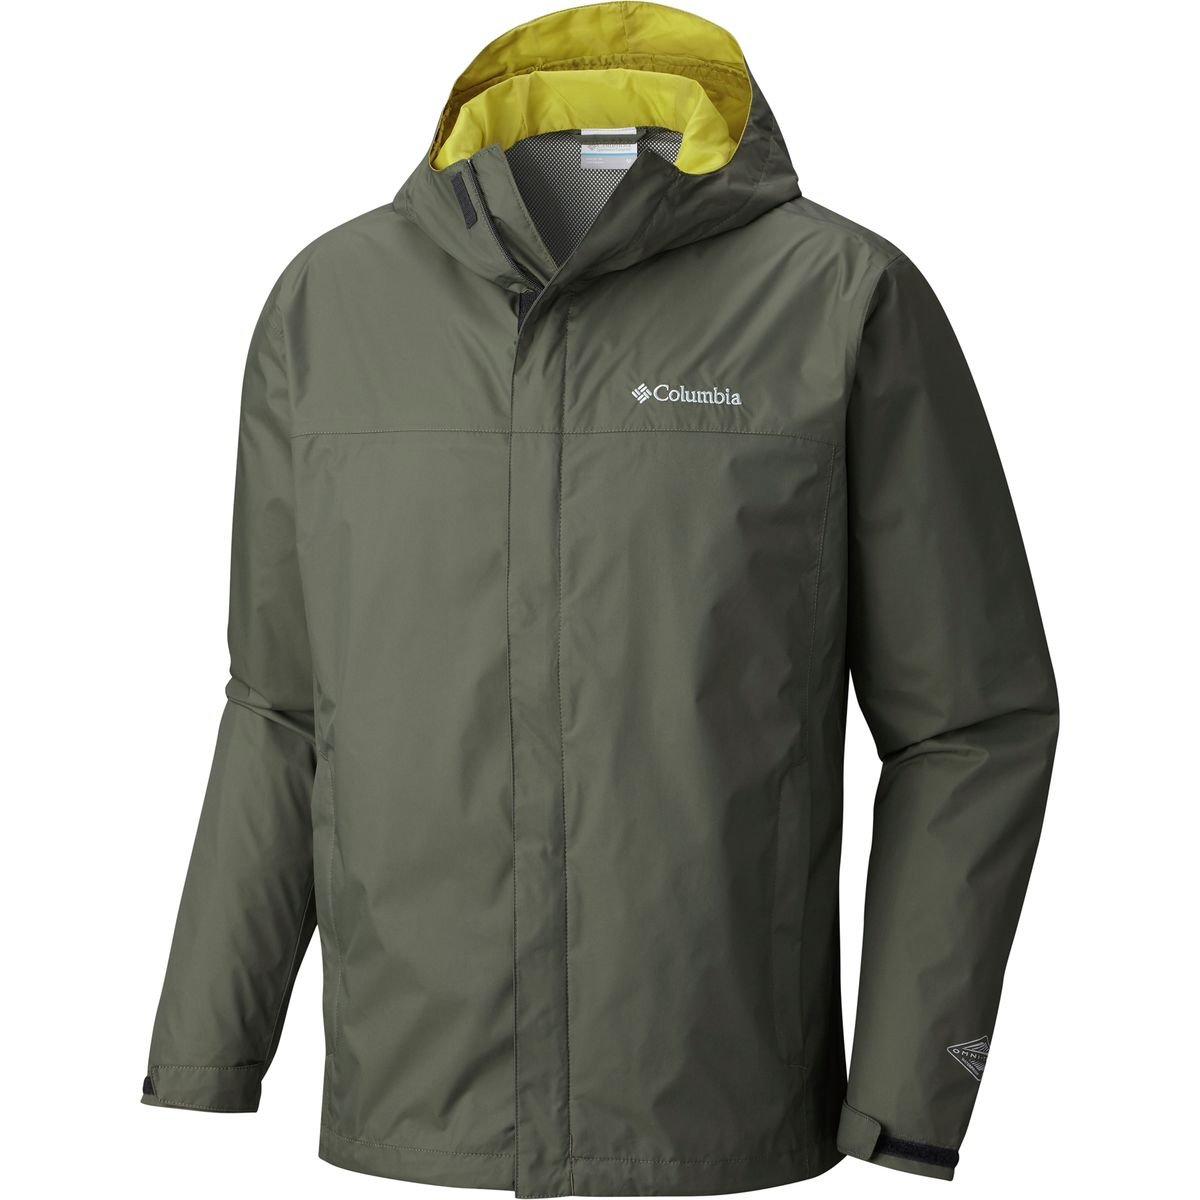 Columbia Men's Watertight Ii Jacket, Gravel, Large by Columbia (Image #1)